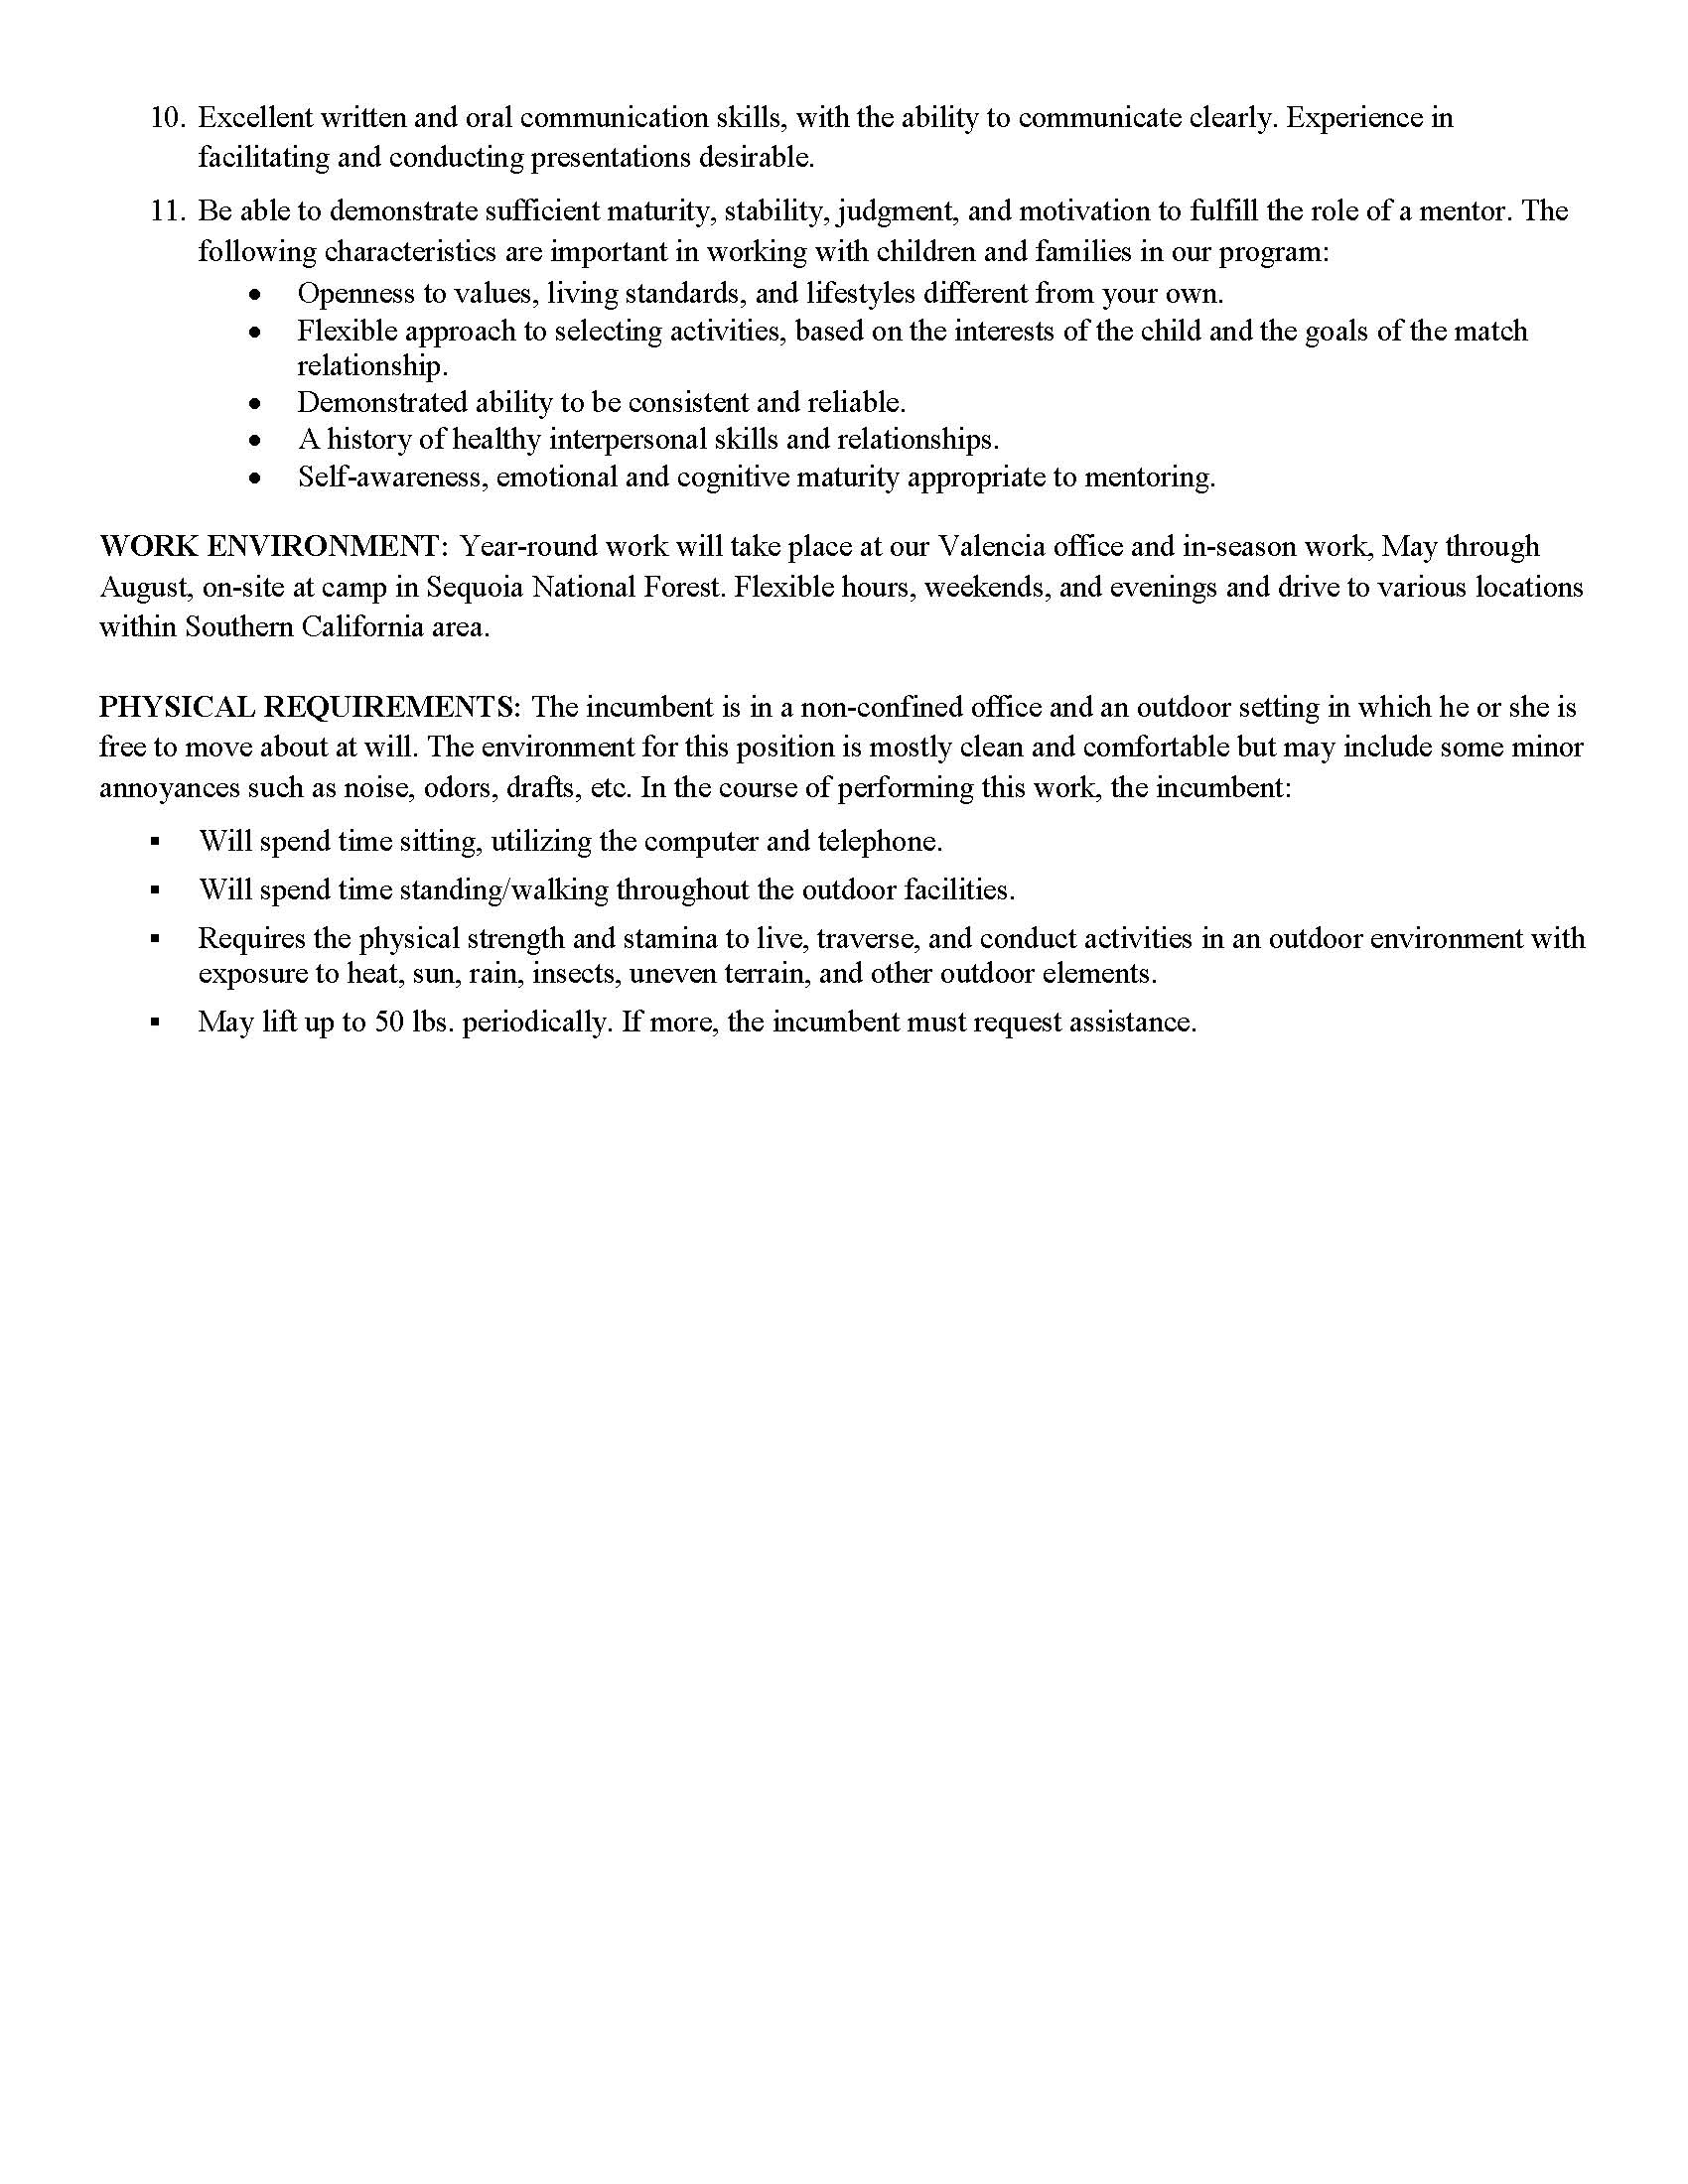 2019 Pyles Camp Program Coordinator Job Description_Page_2.jpg